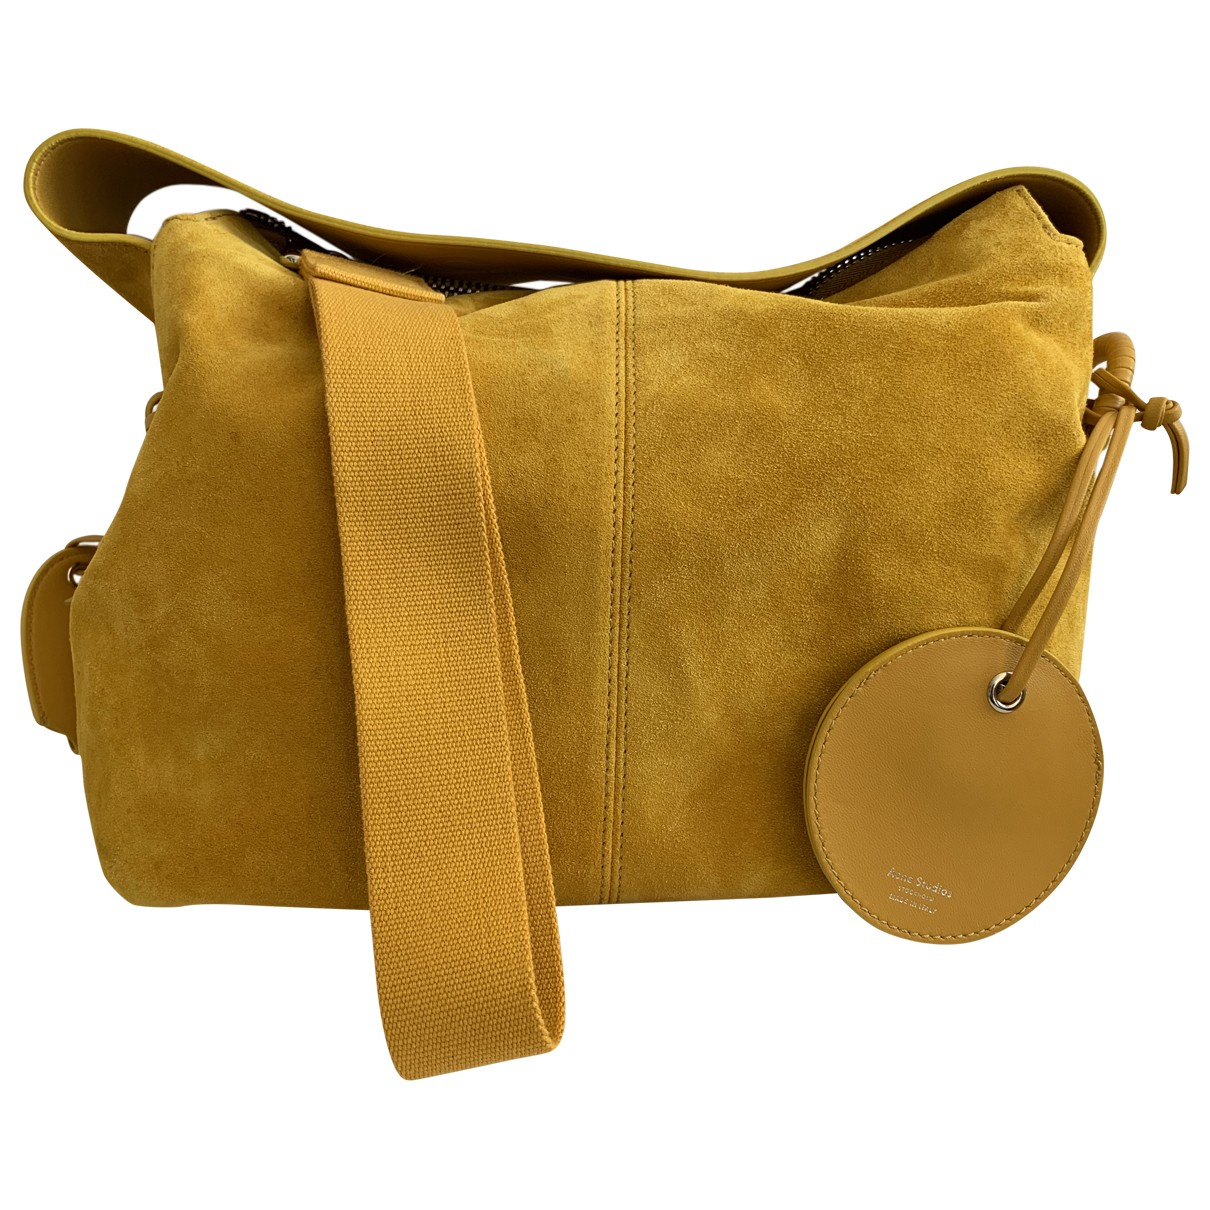 Acne Studios \N Yellow Suede Clutch bag for Women \N